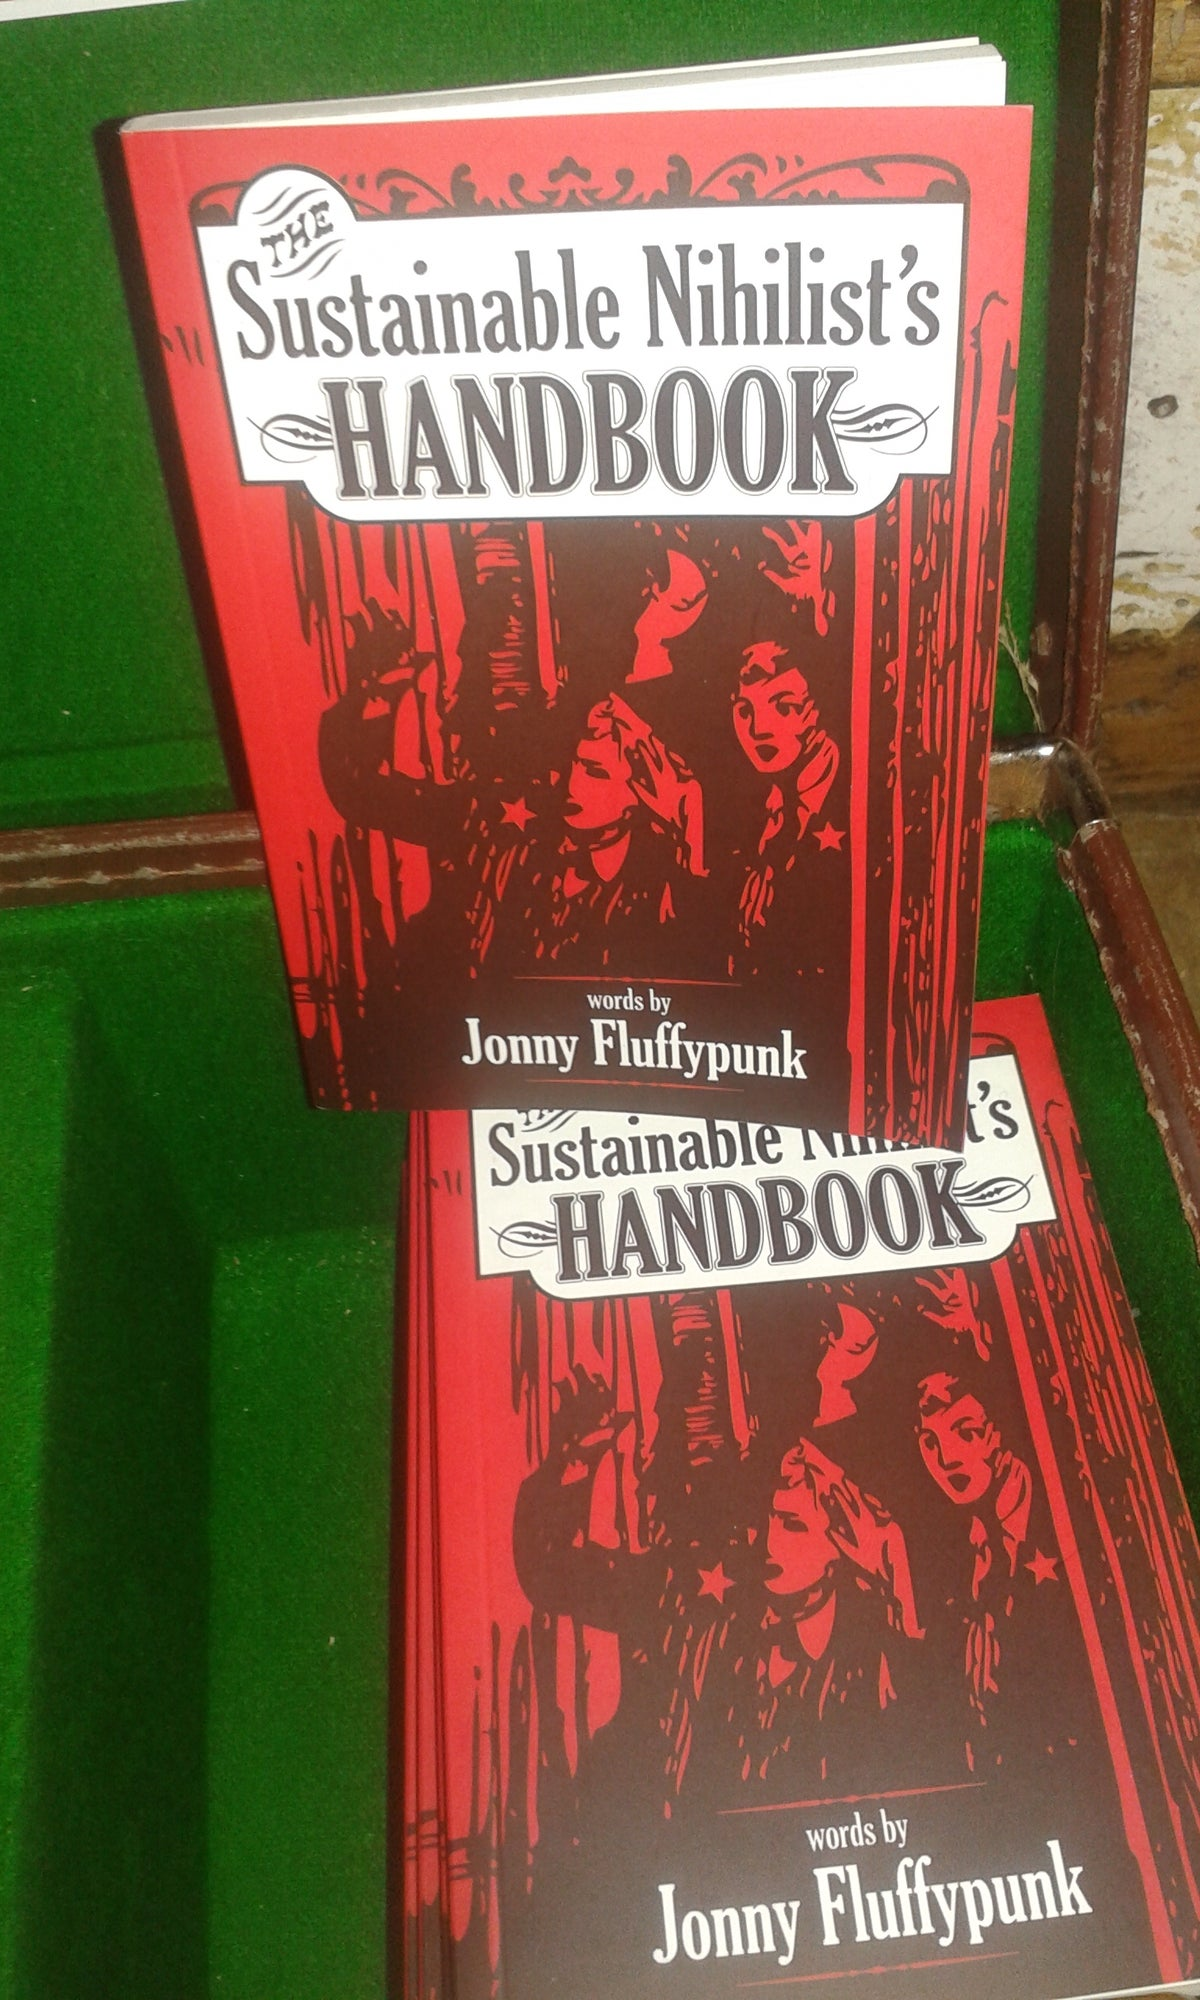 Image of Sustainable Nihilist's Handbook